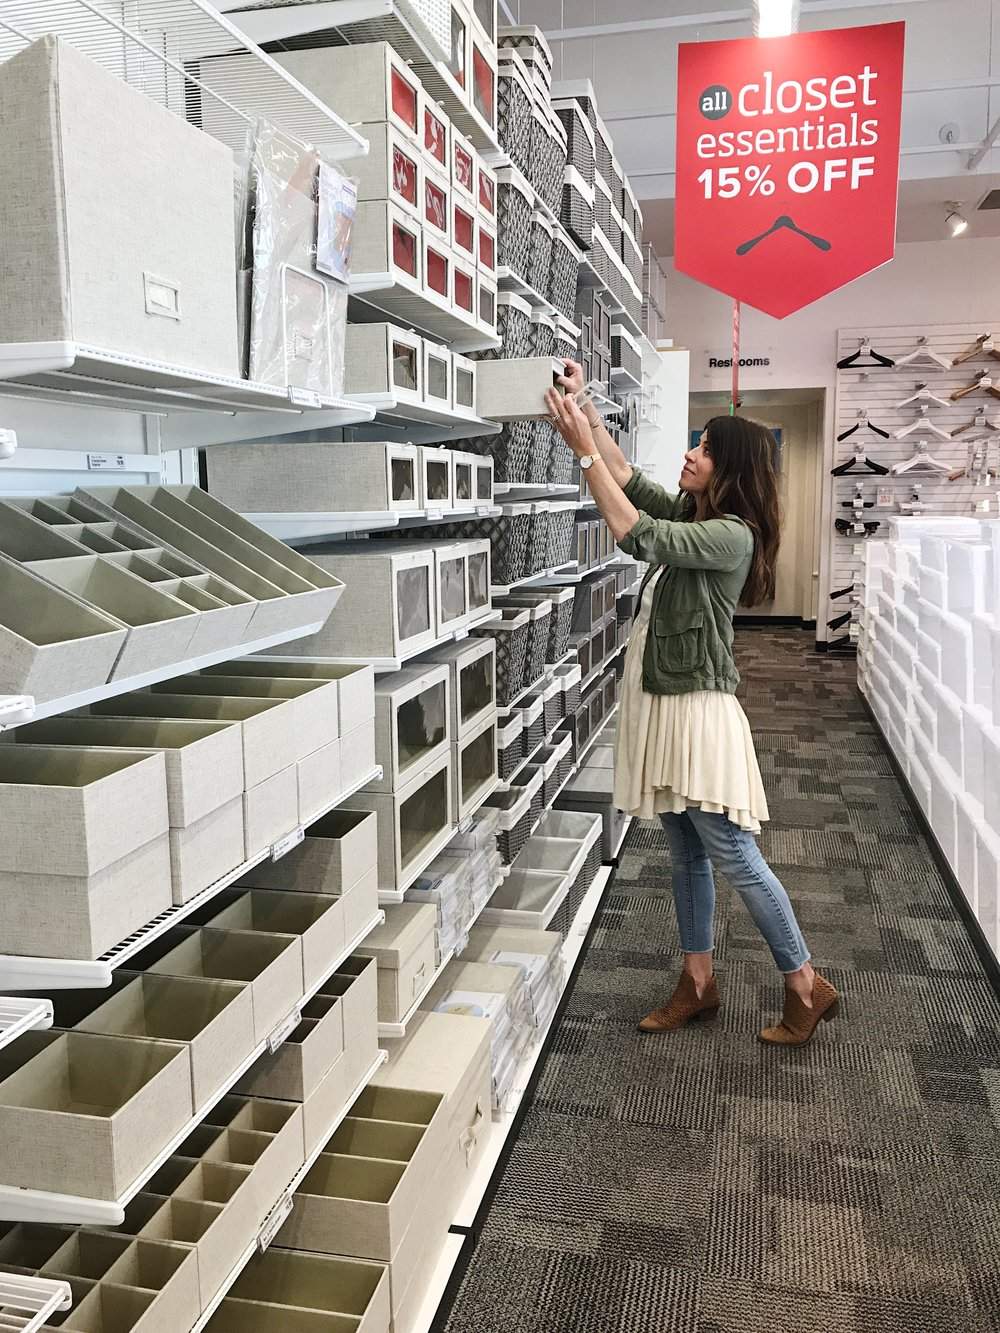 The Container Store:  #TurnYourClosetAround Influencer Amplification & Content Program